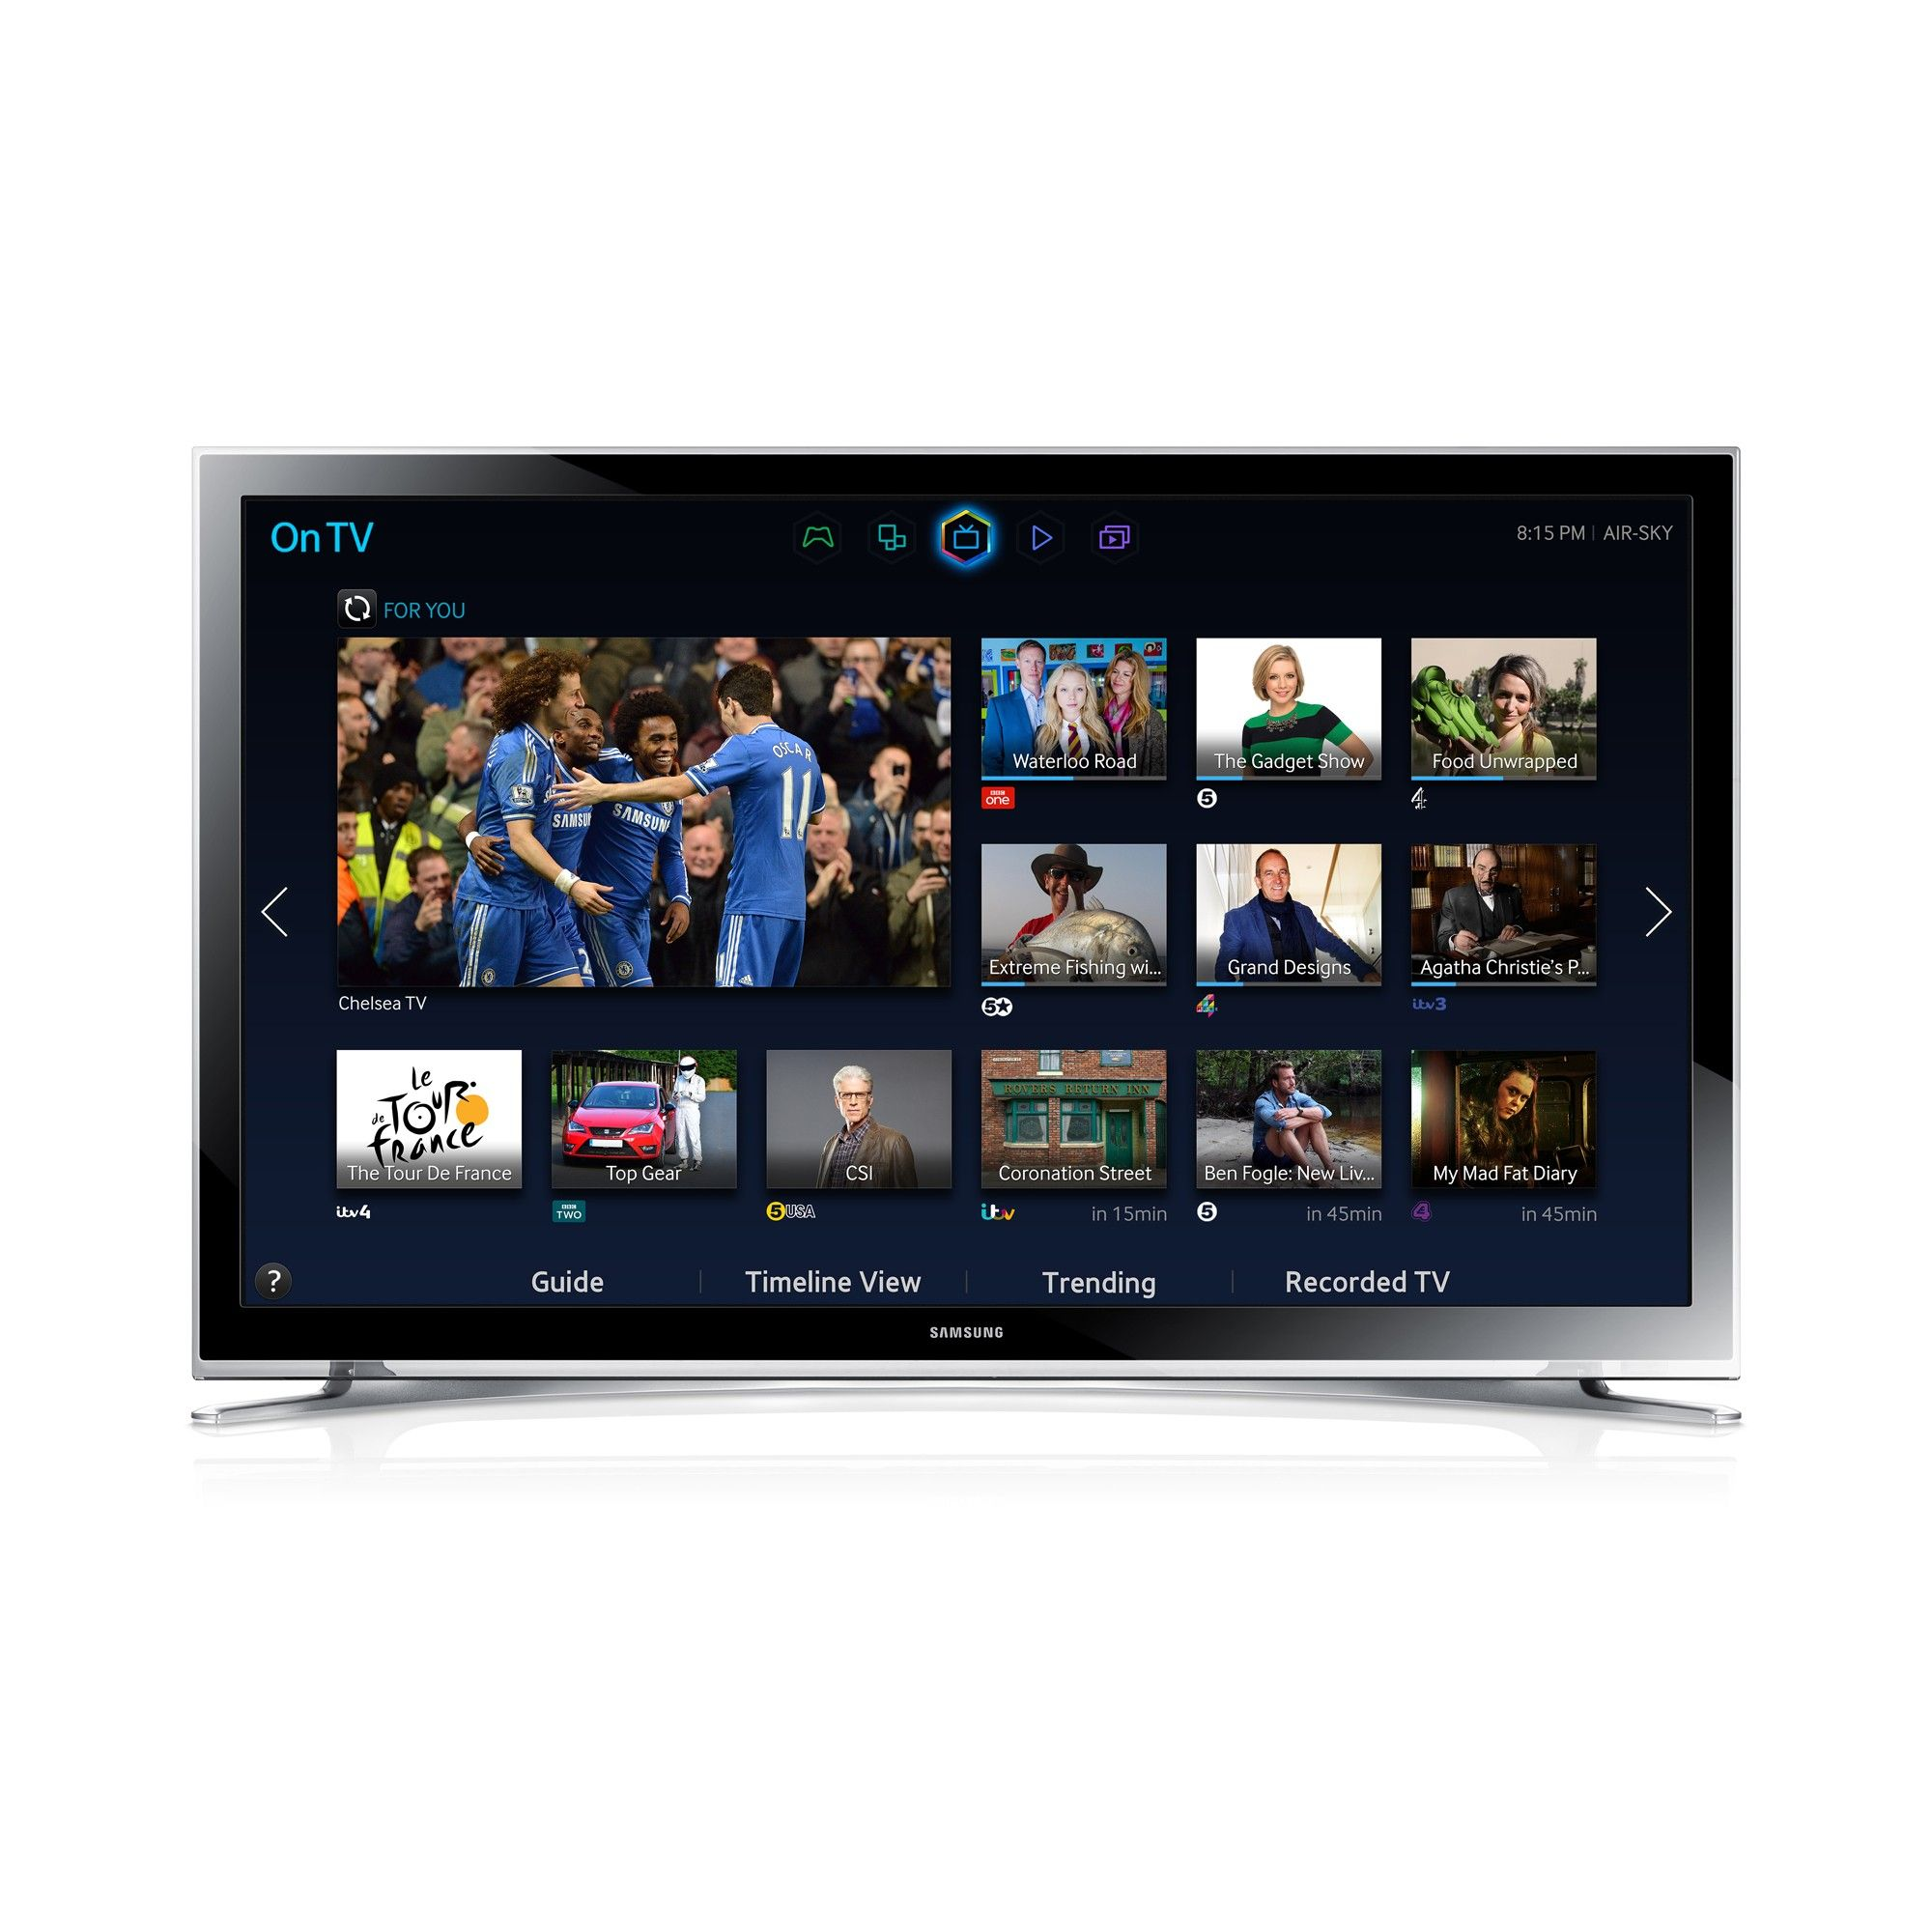 """The Samsung UE22H5600 is a 22 inch Full HD Smart LED TV"